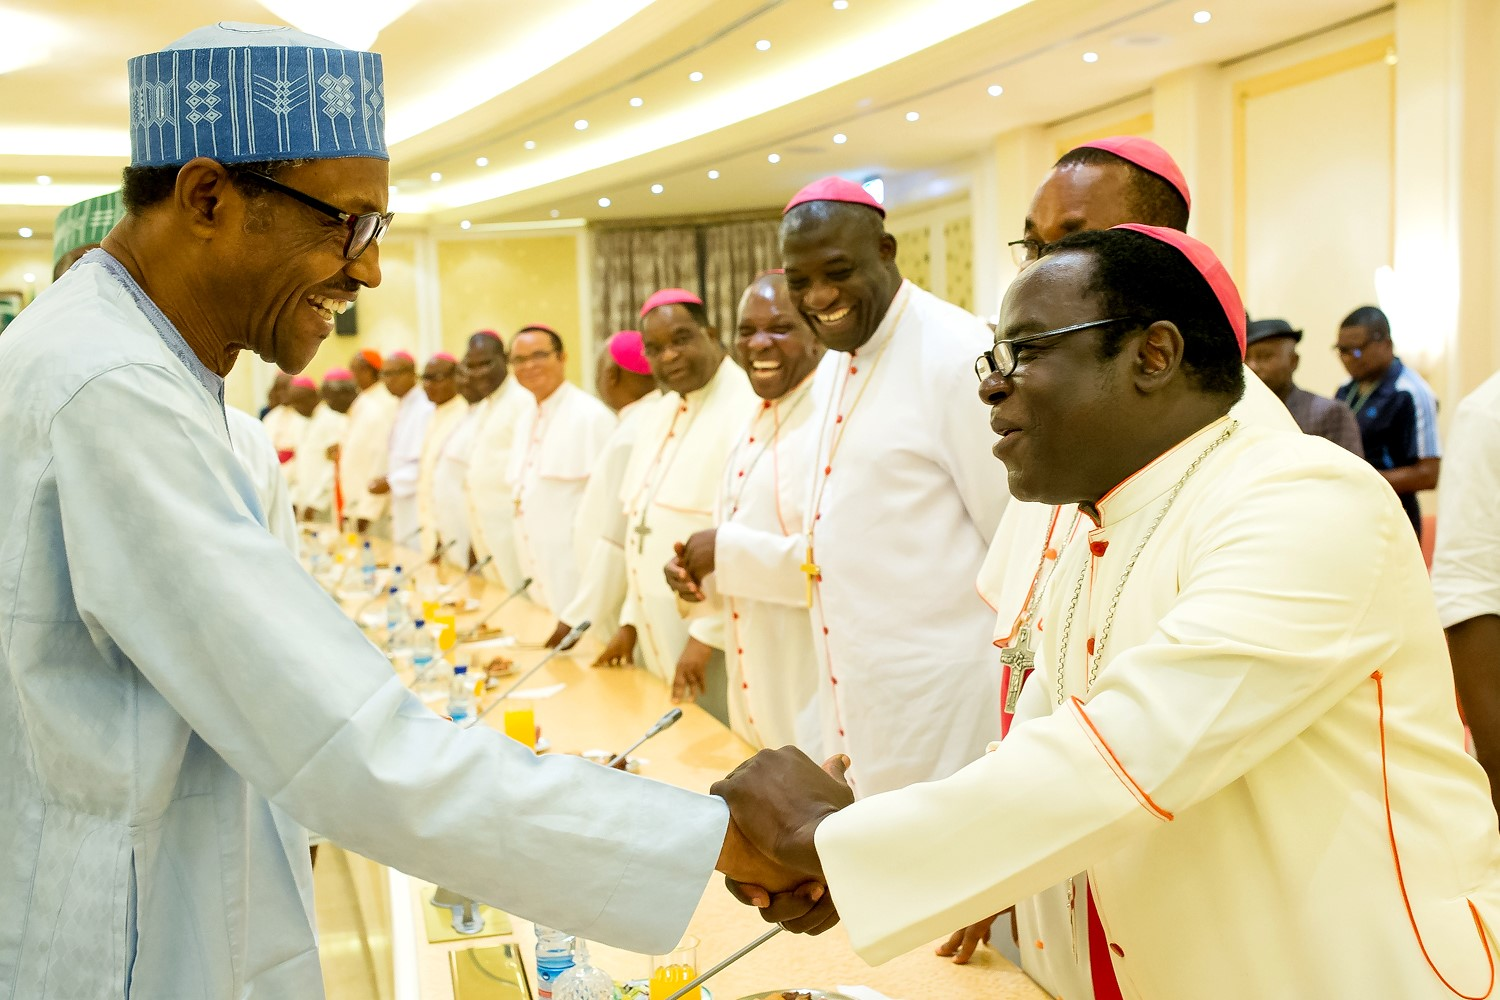 Nigerian Bishops Ask Their President for Action on Christians' Rights